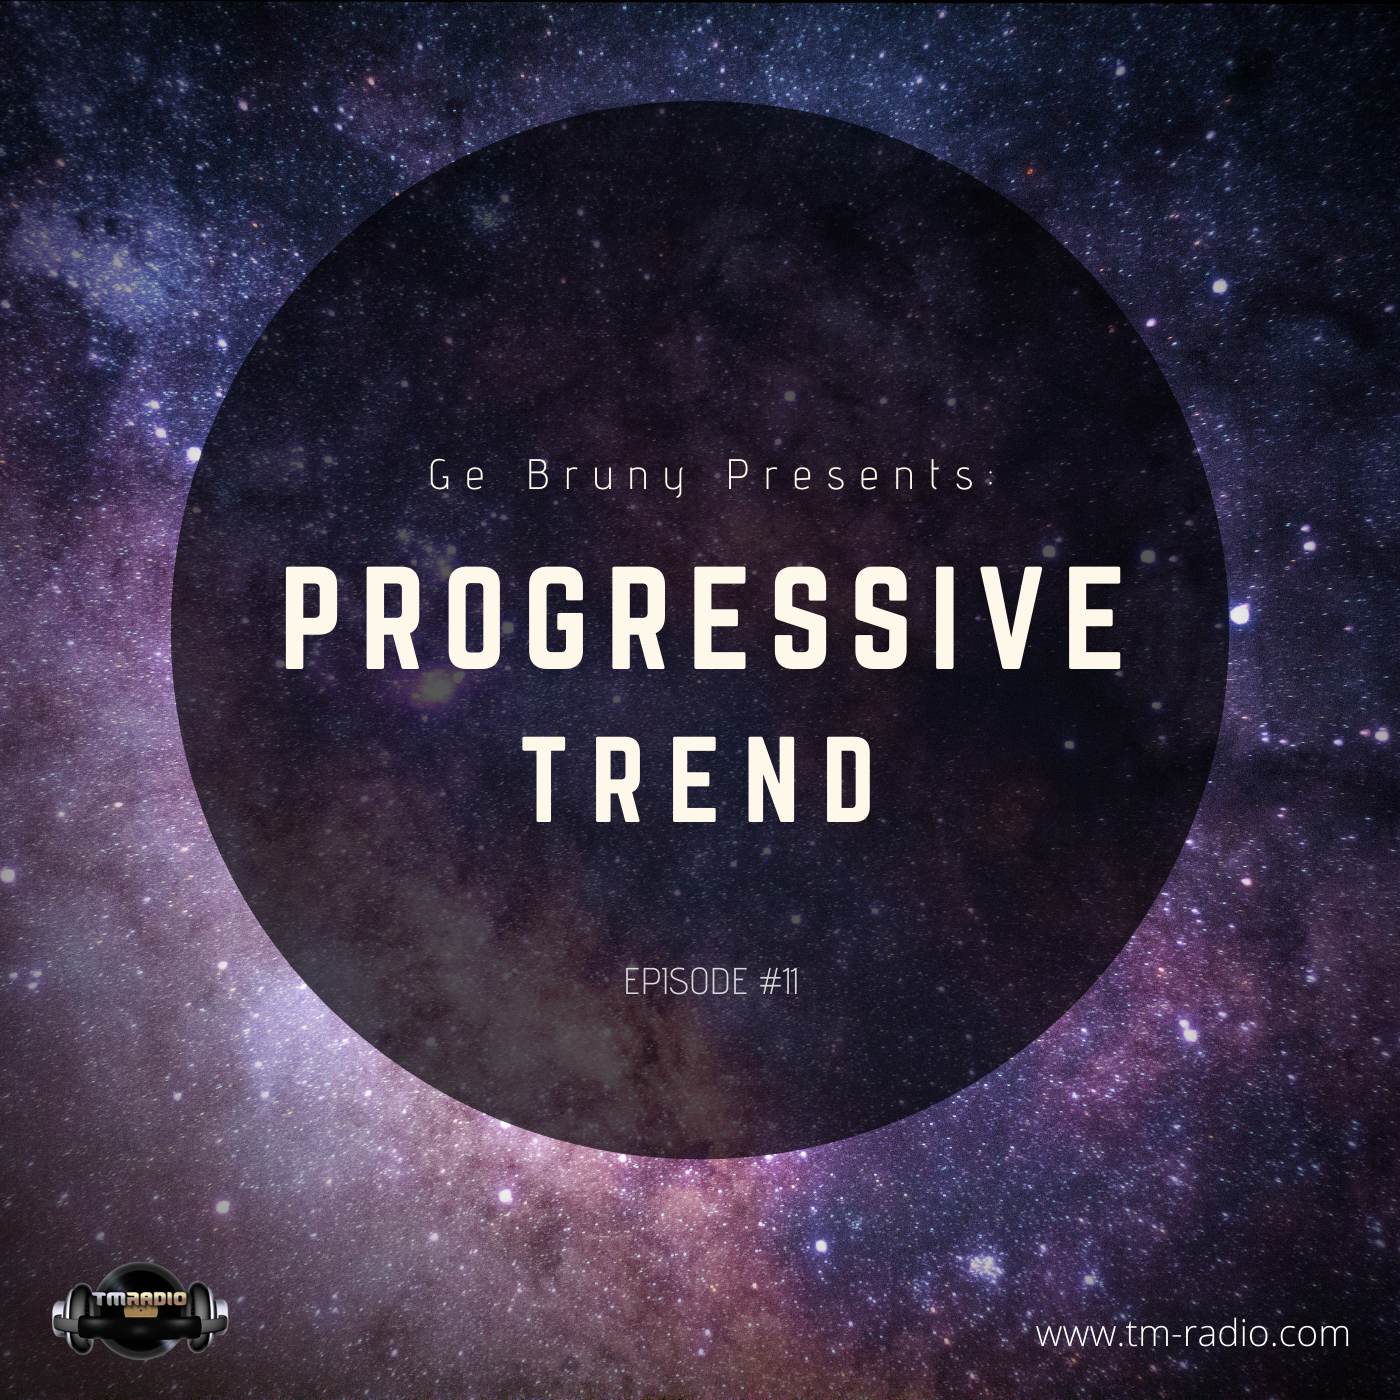 Ge Bruny presents: Progressive Trend :: Episode 011 (aired on February 1st, 2020) banner logo